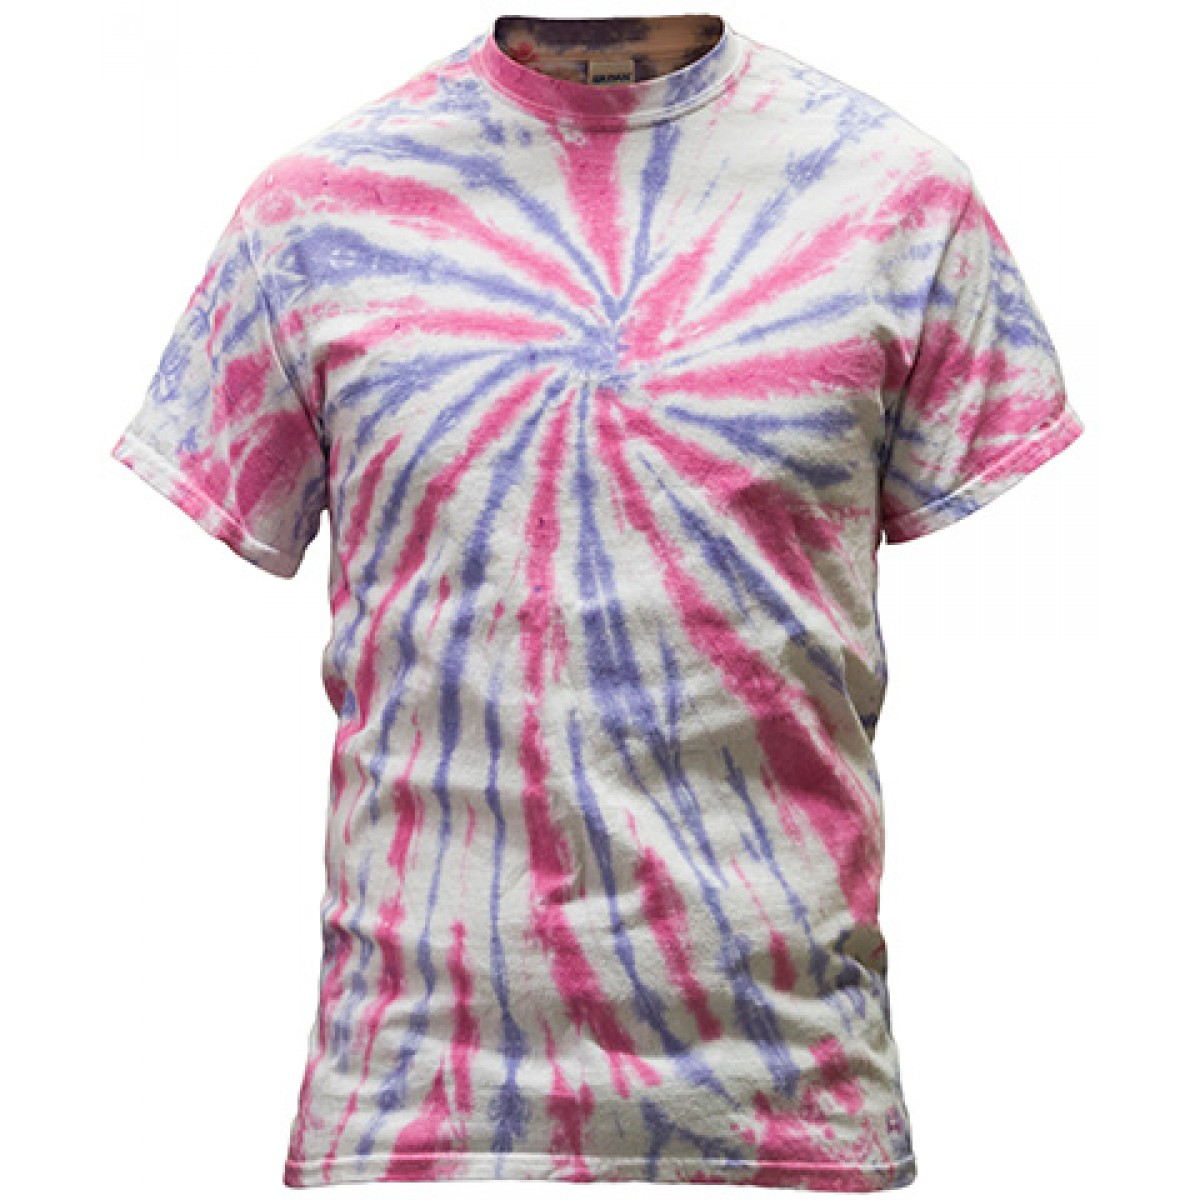 Multi-Color Tie-Dye Tee -Pink/Purple-2XL